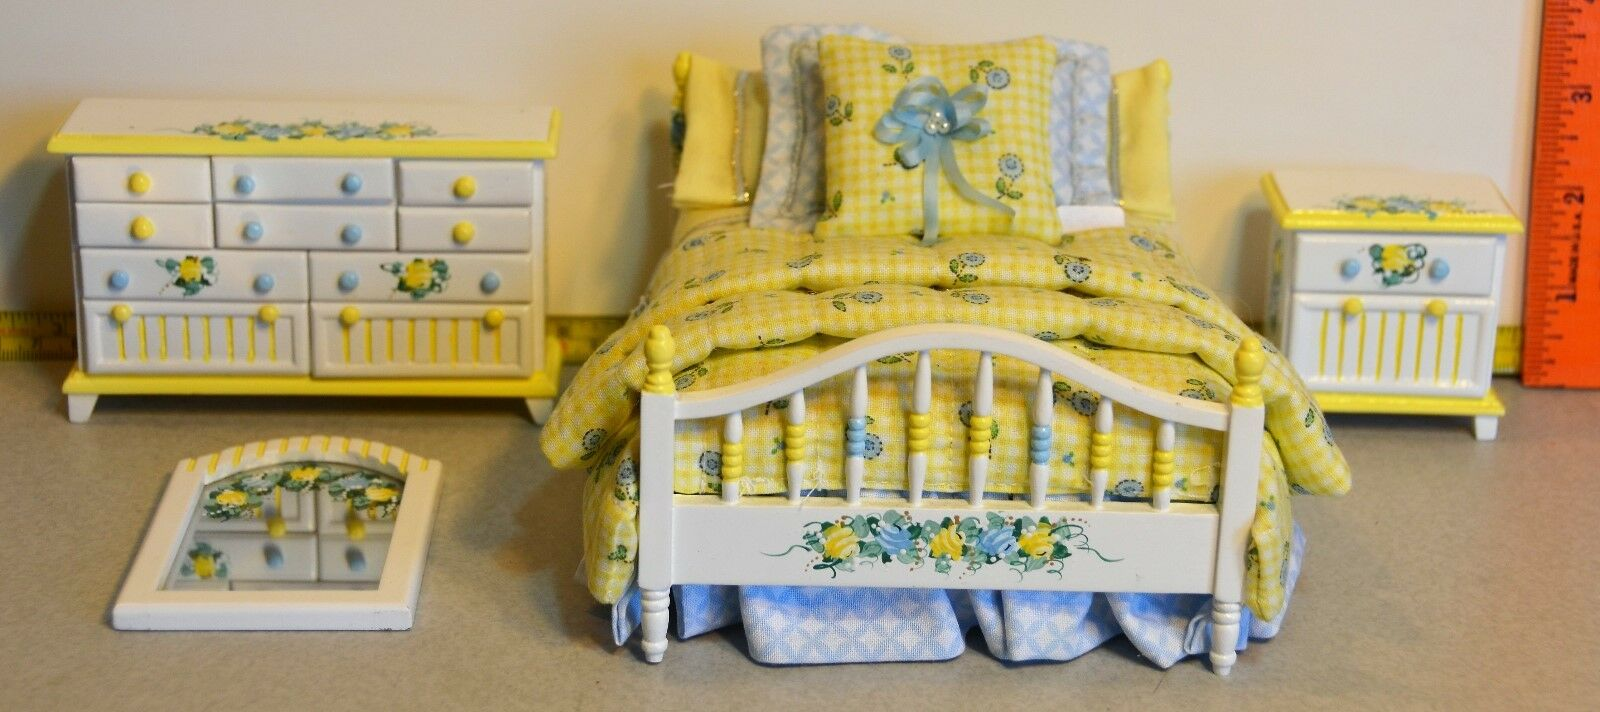 Bedroom Set Hand Painted Dollhouse 1:12 Signed DRB Roombox